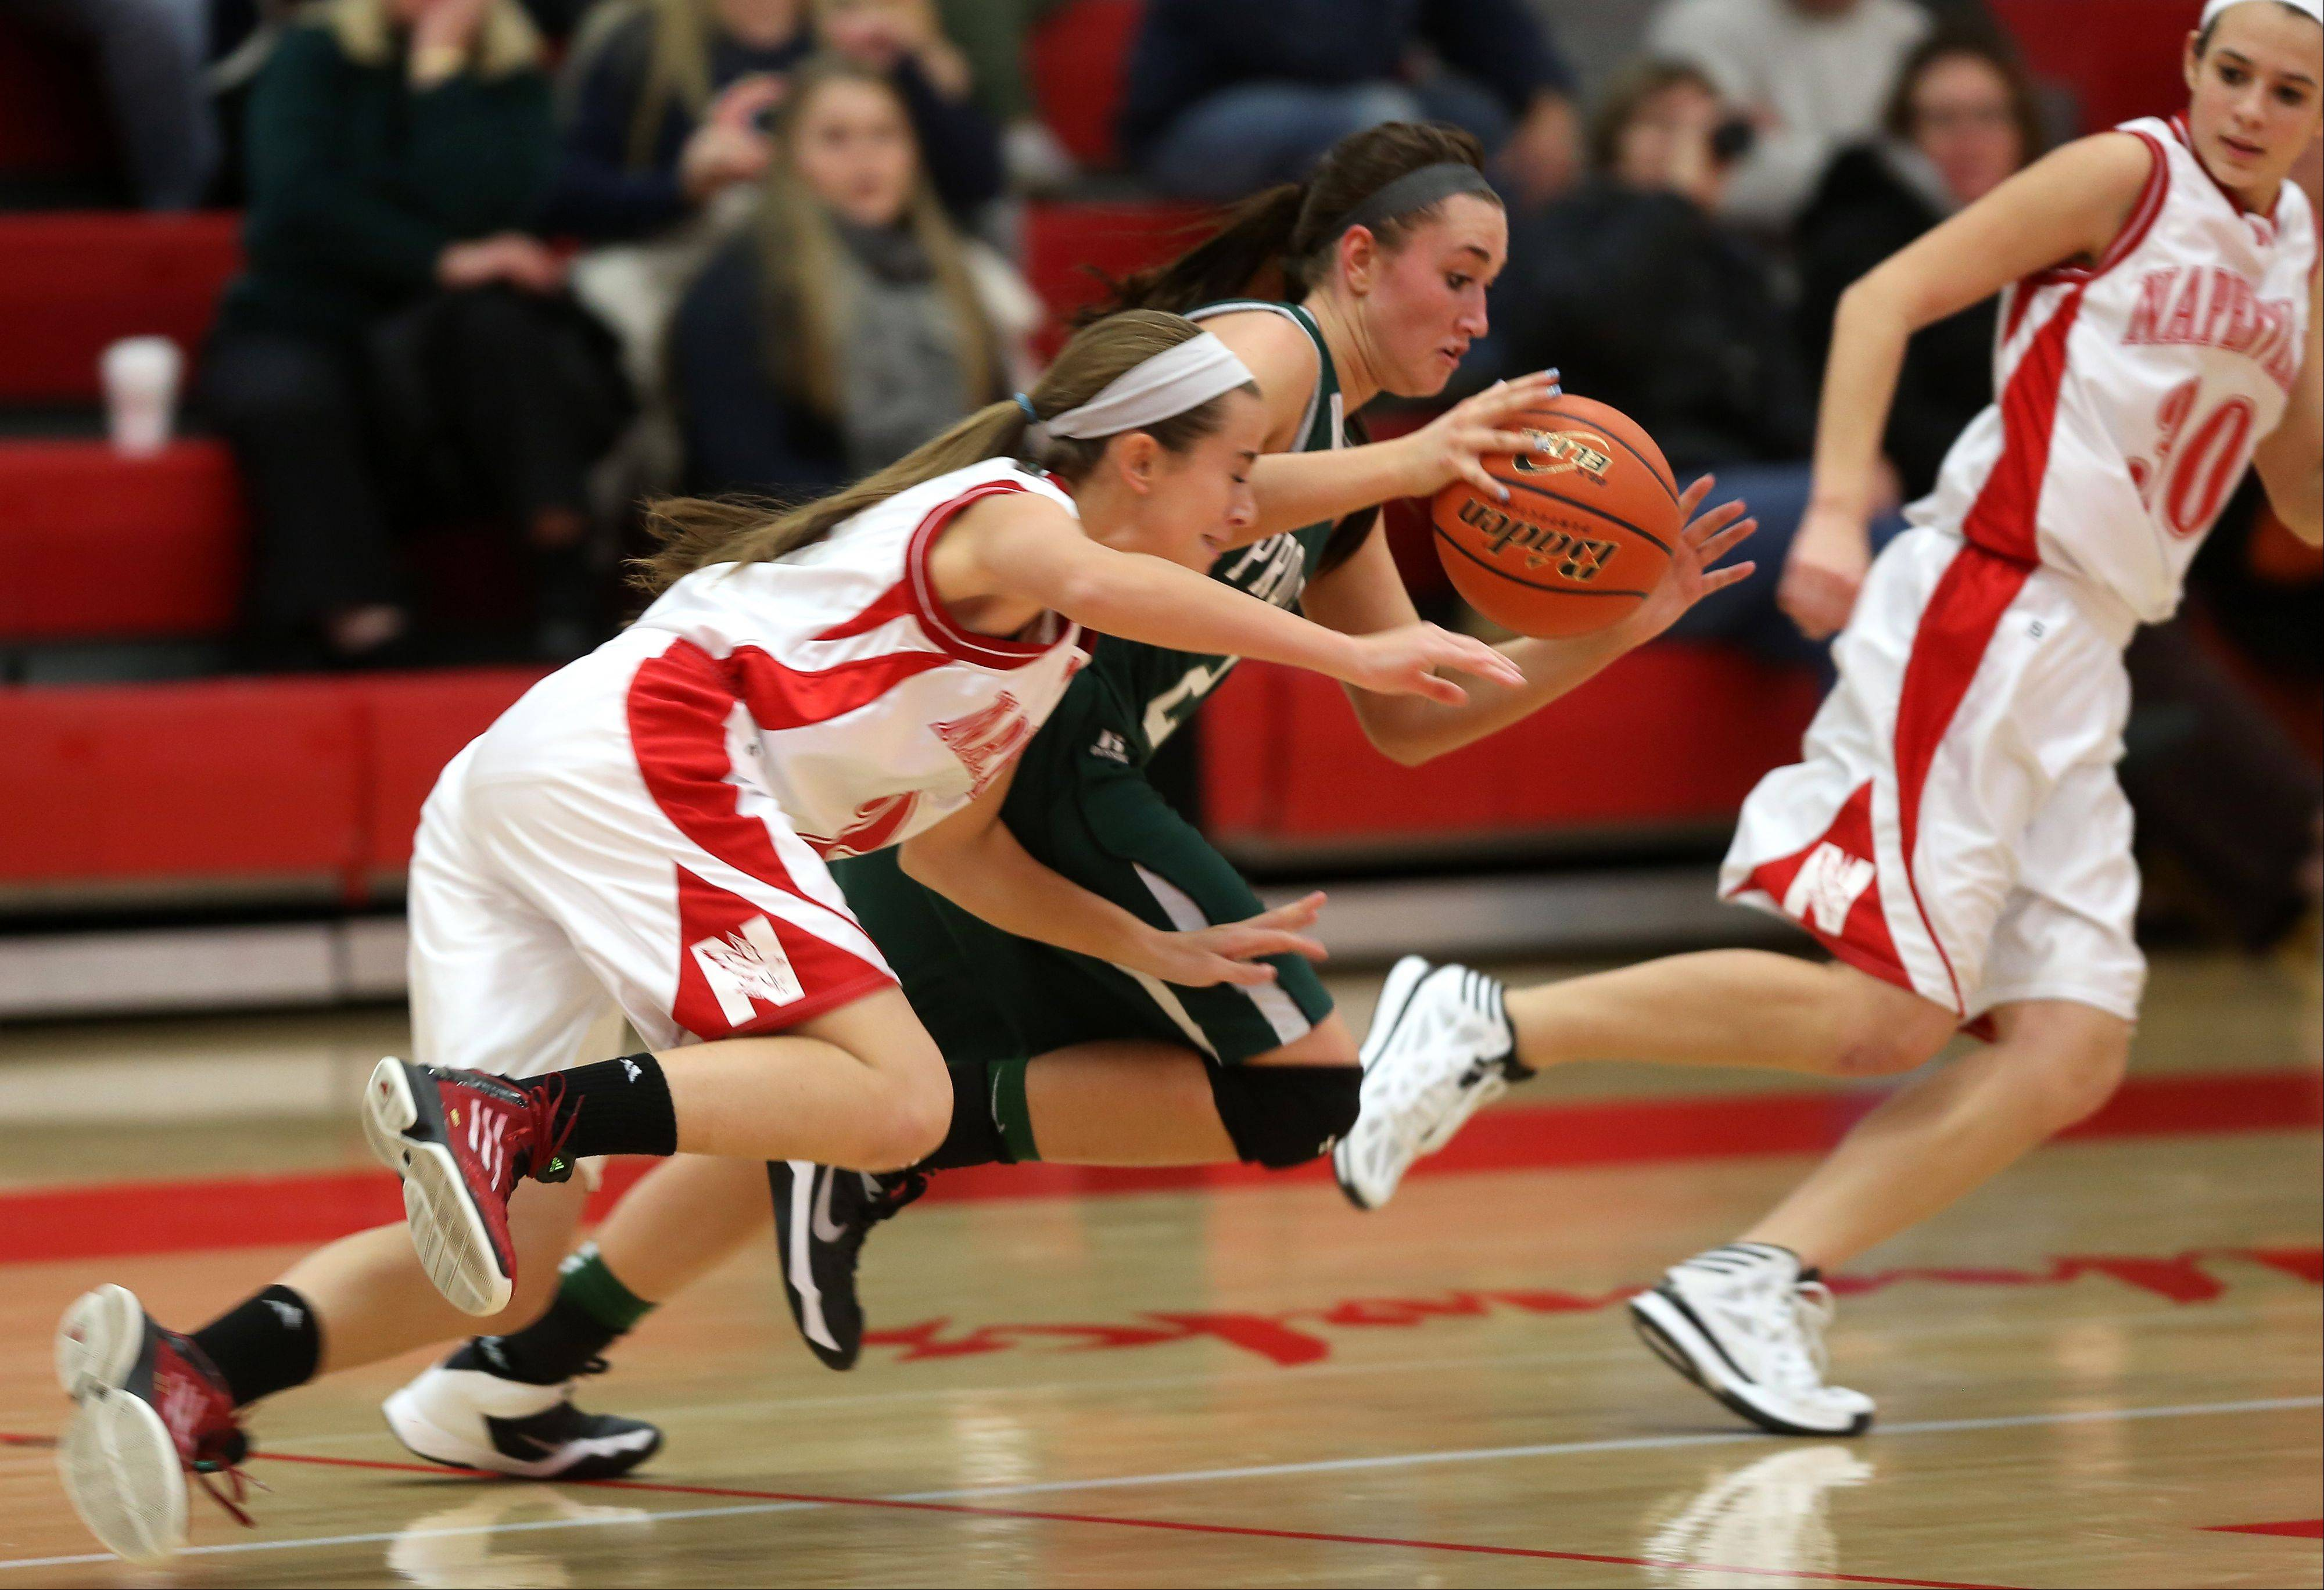 Naperville Central's Courtney Giebel, left, battles Providence's Alyssa Jurges during the 2013 girls basketball Tip-Off Tournament.